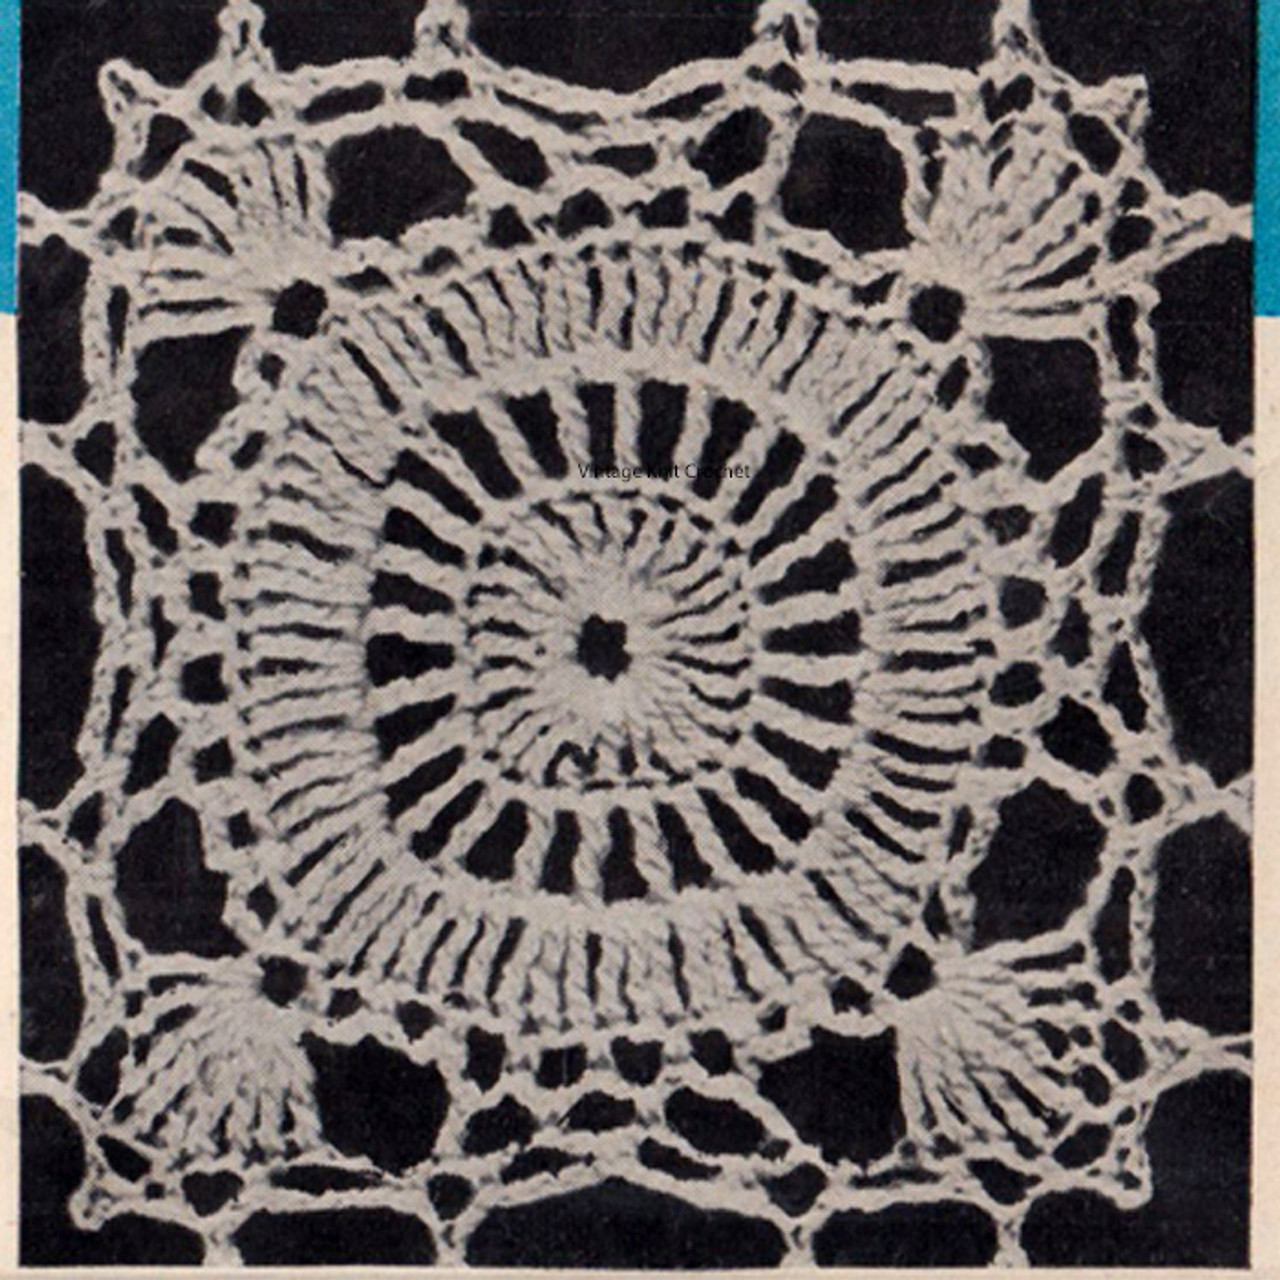 Crocheted Square Pattern for Cloths Spreads